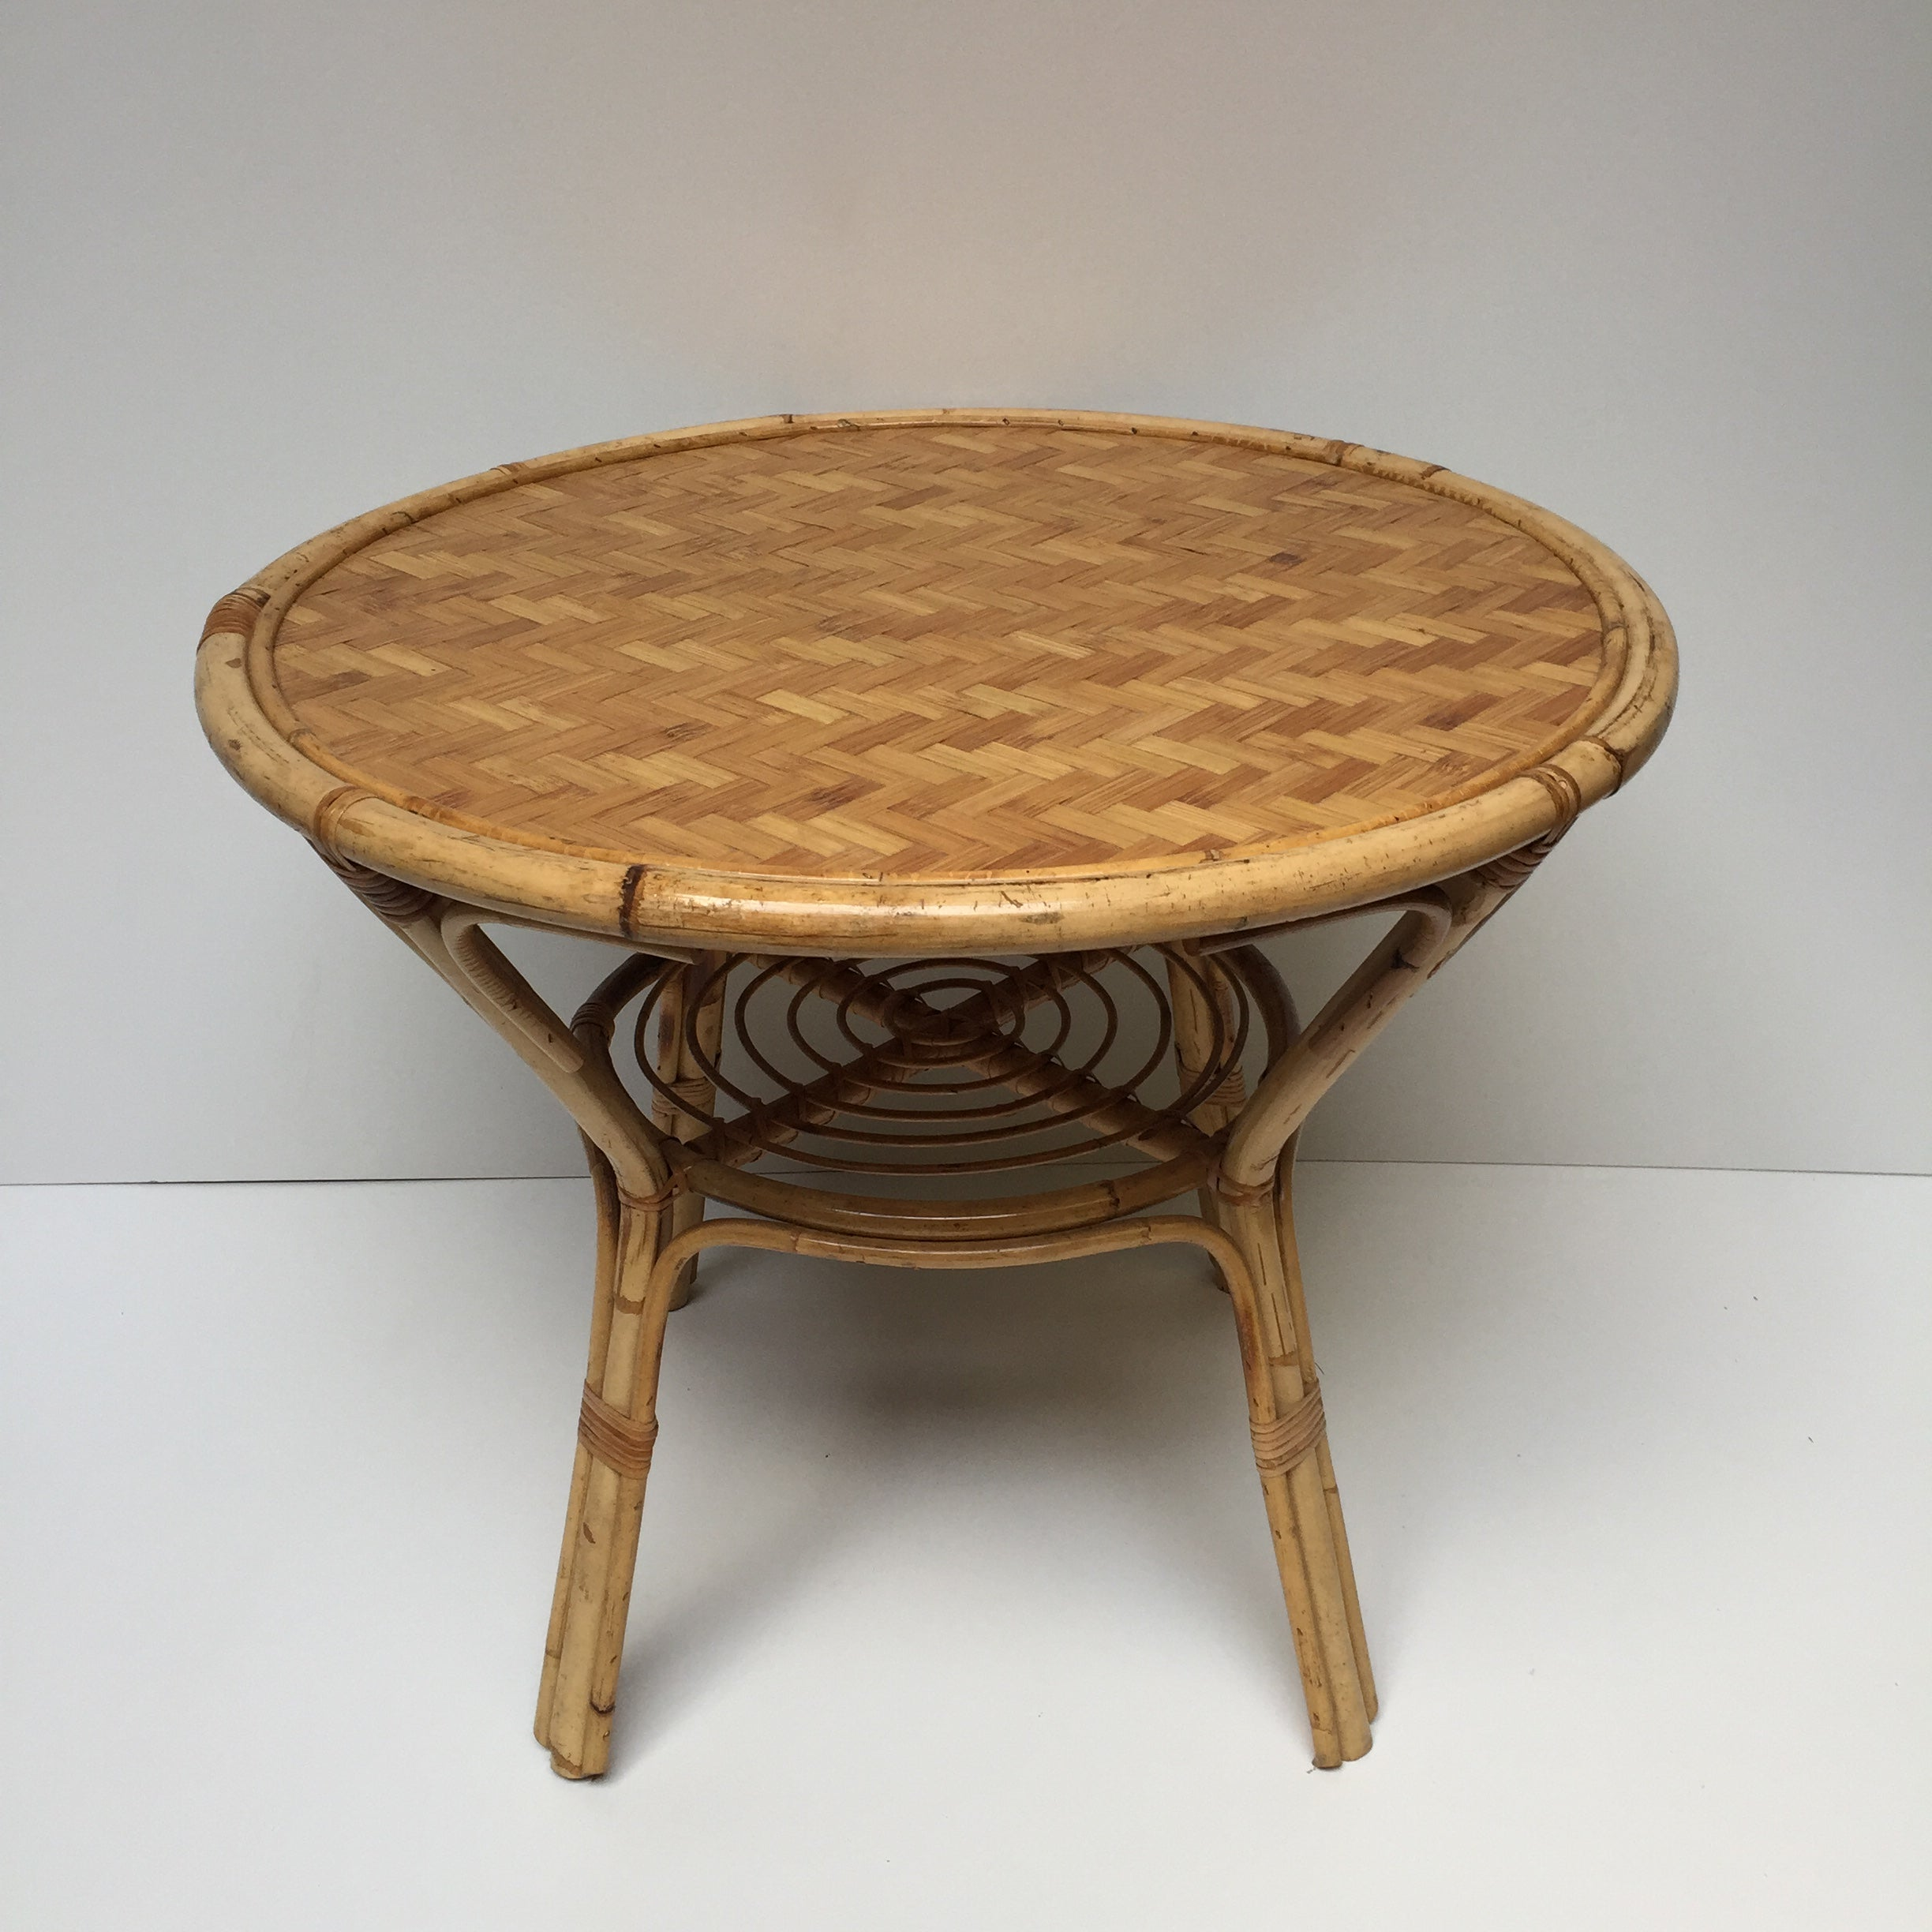 1970s Vintage Wicker Dining Table  - Table A Manger Vintage Rotin 70 - Free Delivery UK - Livraison Gratuite France